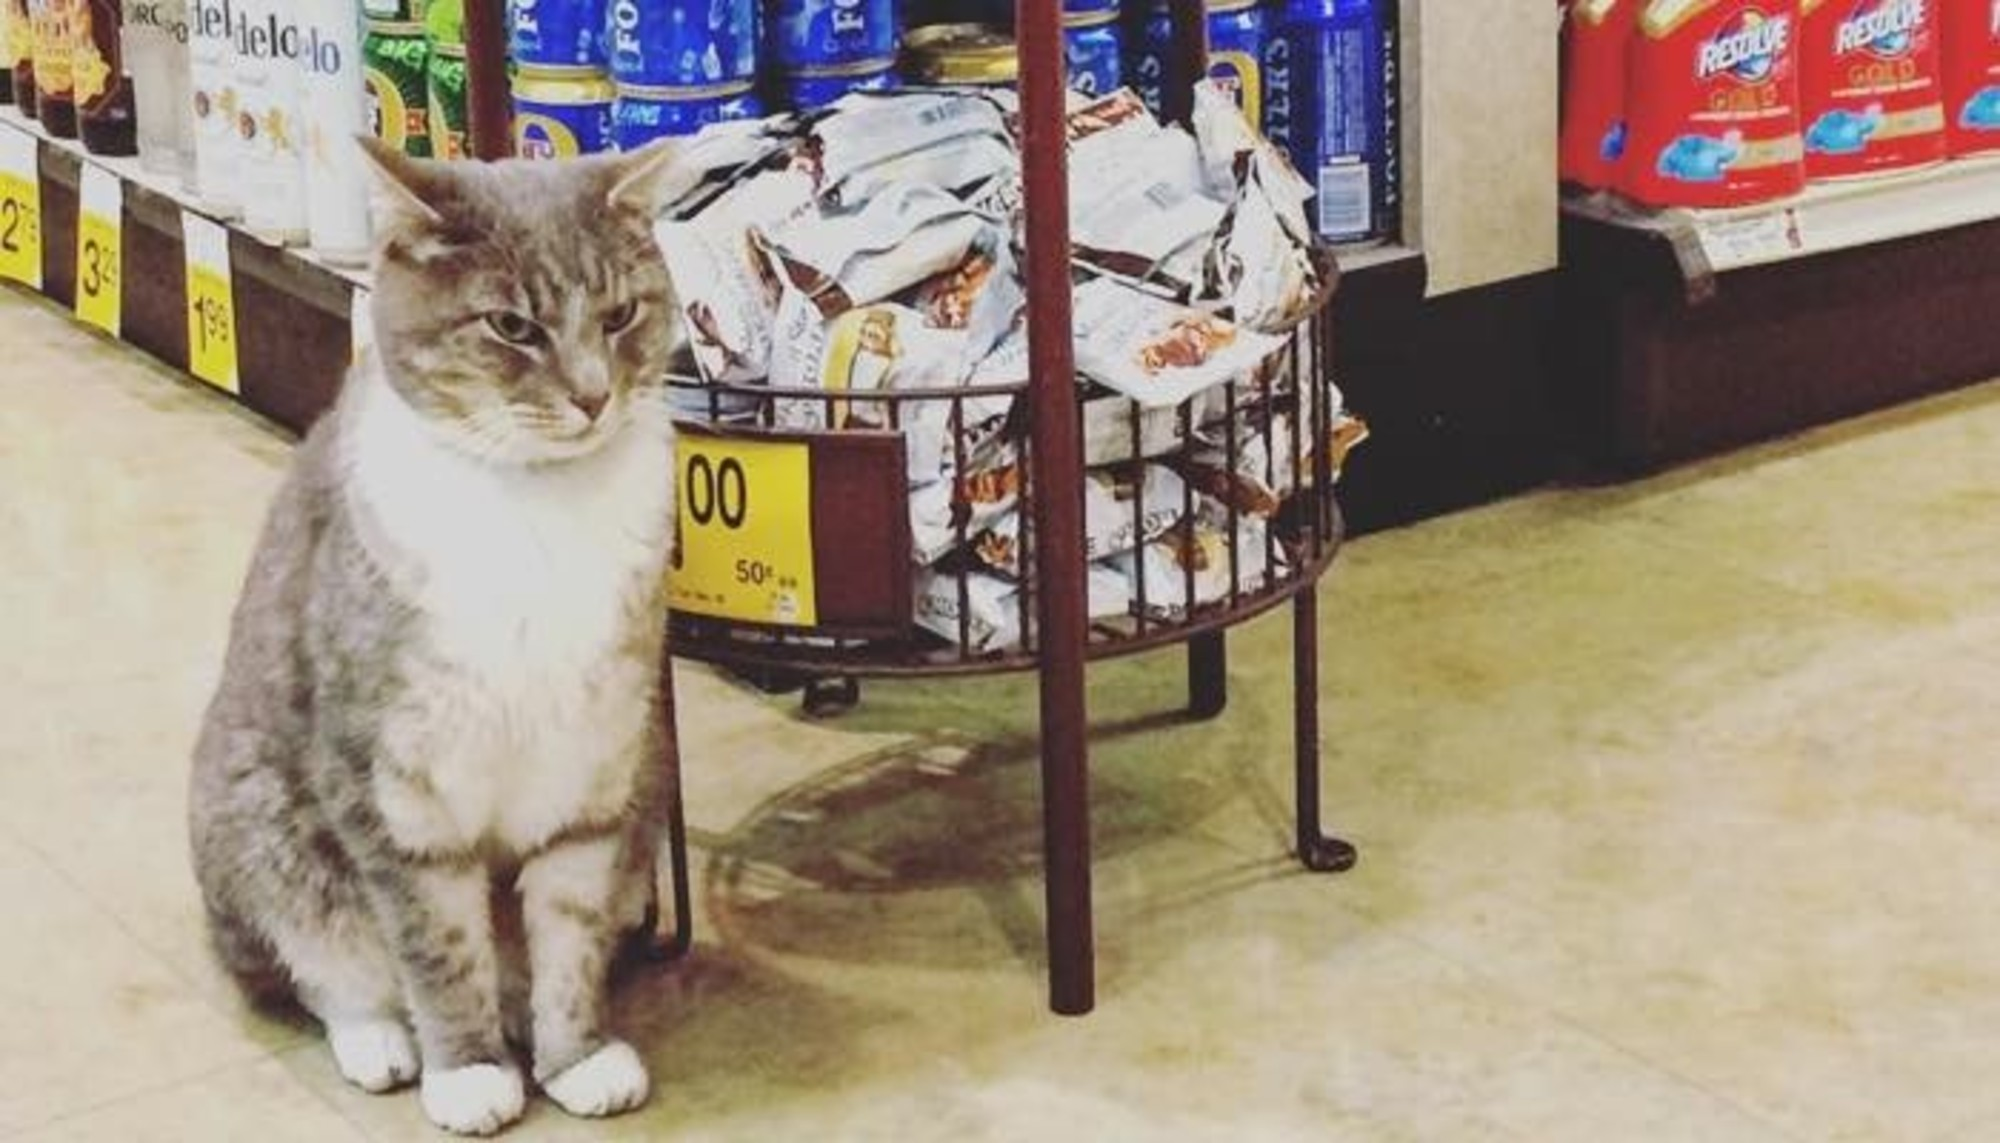 This Cat Greets Customers At Grocery Store